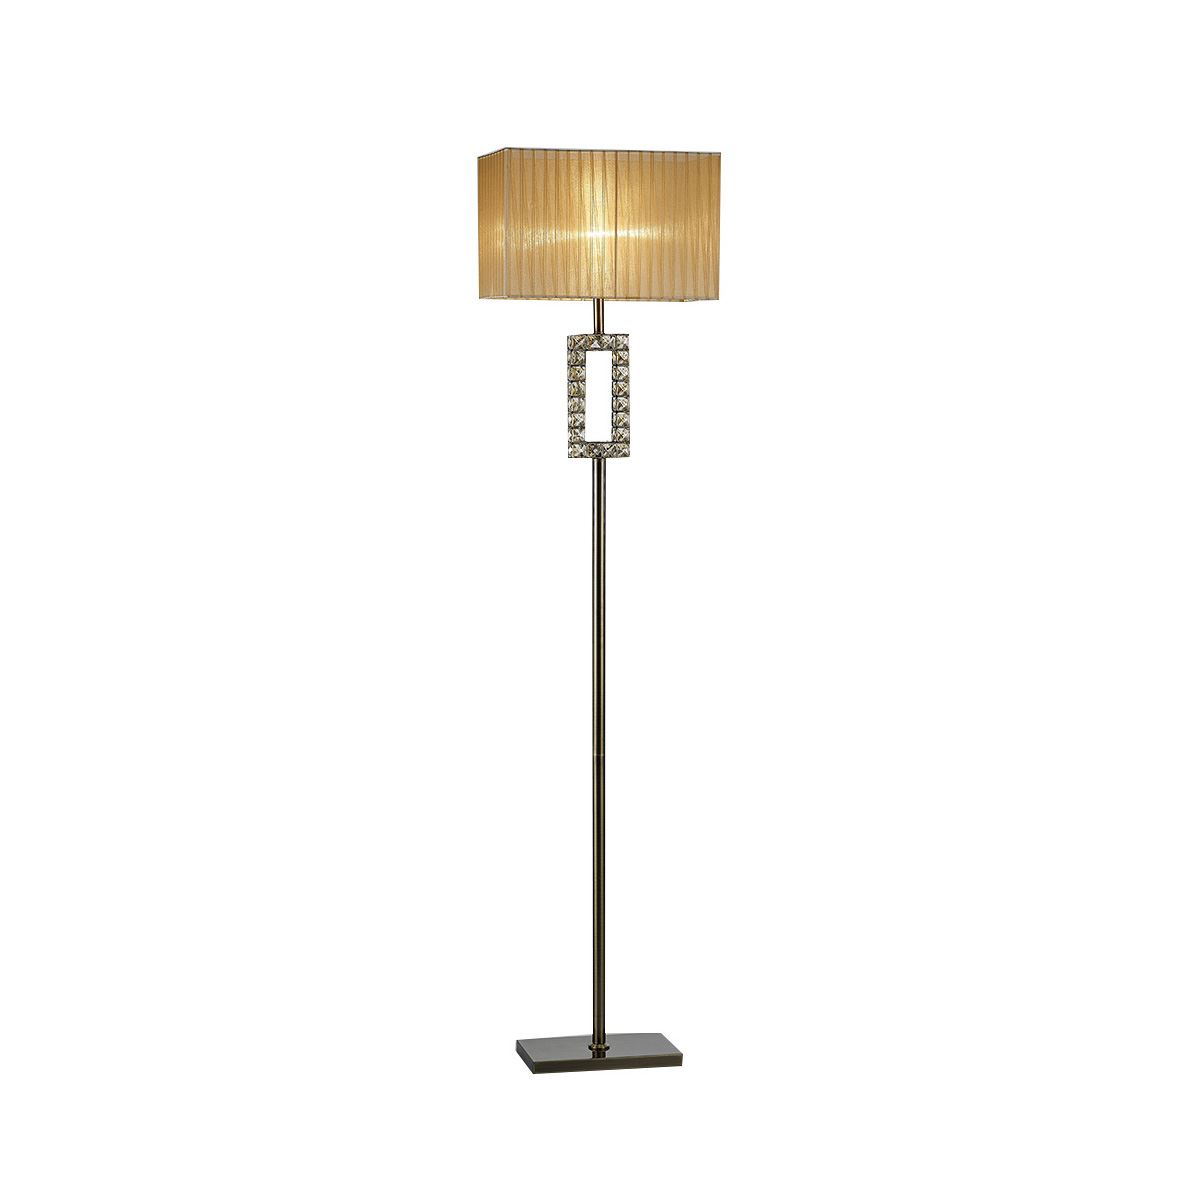 Florence Rectangle Floor Lamp With Bronze Shade 1 Light Antique Brass/Crystal